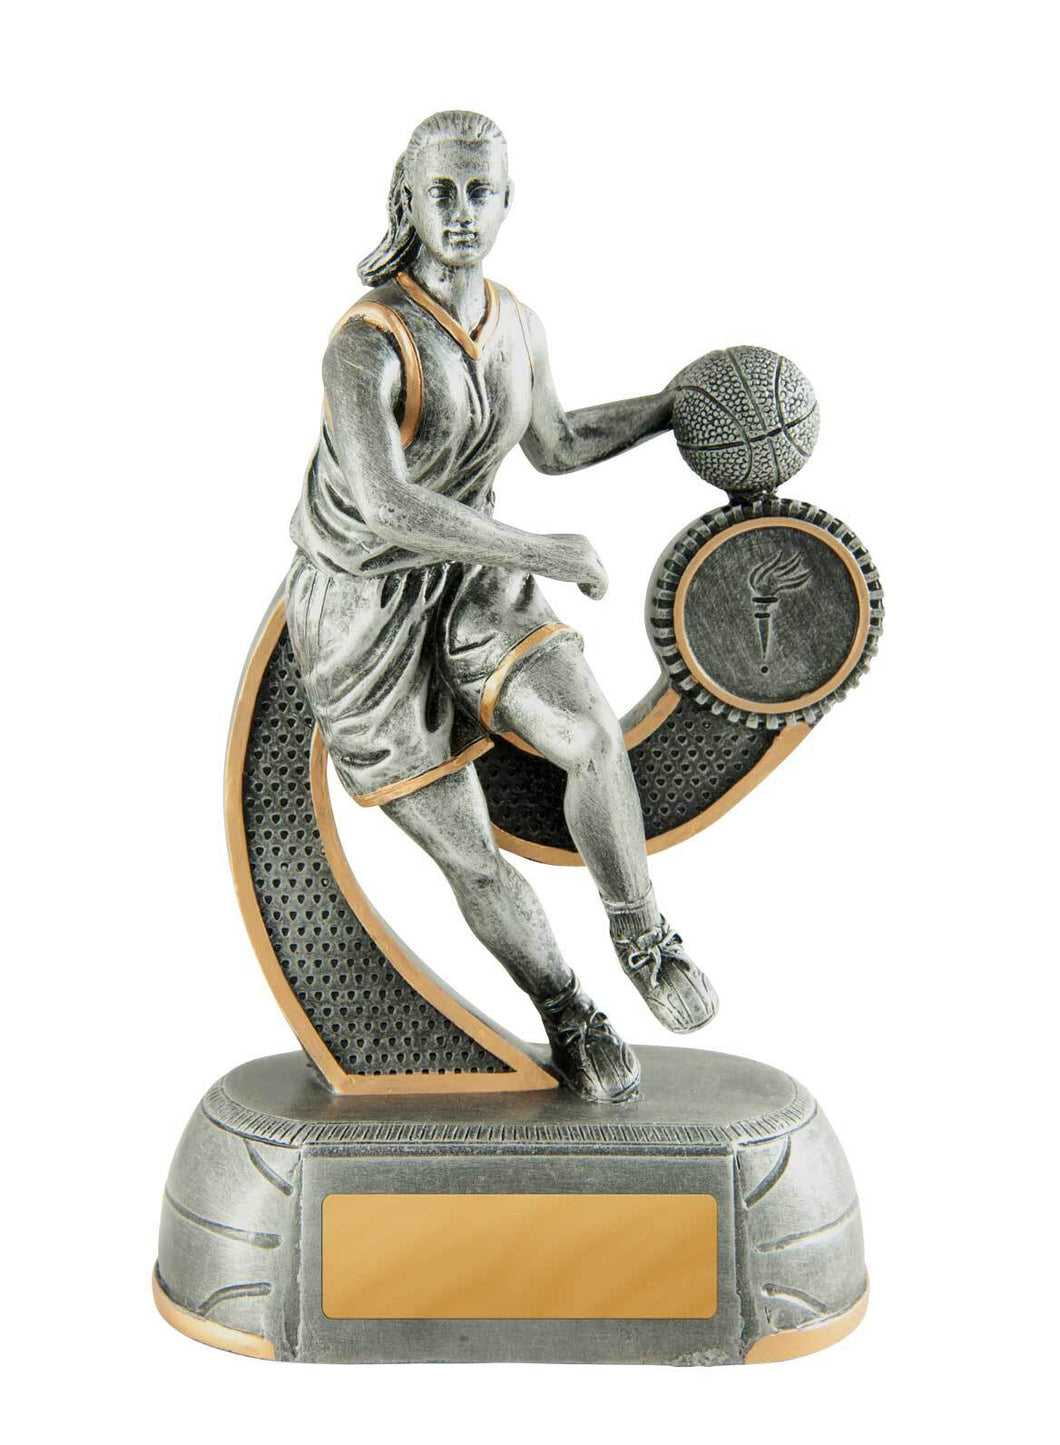 658-7FC Megastar Basketball Series of Trophies, in Silver Resin with Gold Trim - Female Silver & Gold Resin  4 Sizes:  125mm / 150mm / 175mm / 200mm available, Engraving & Club logo included